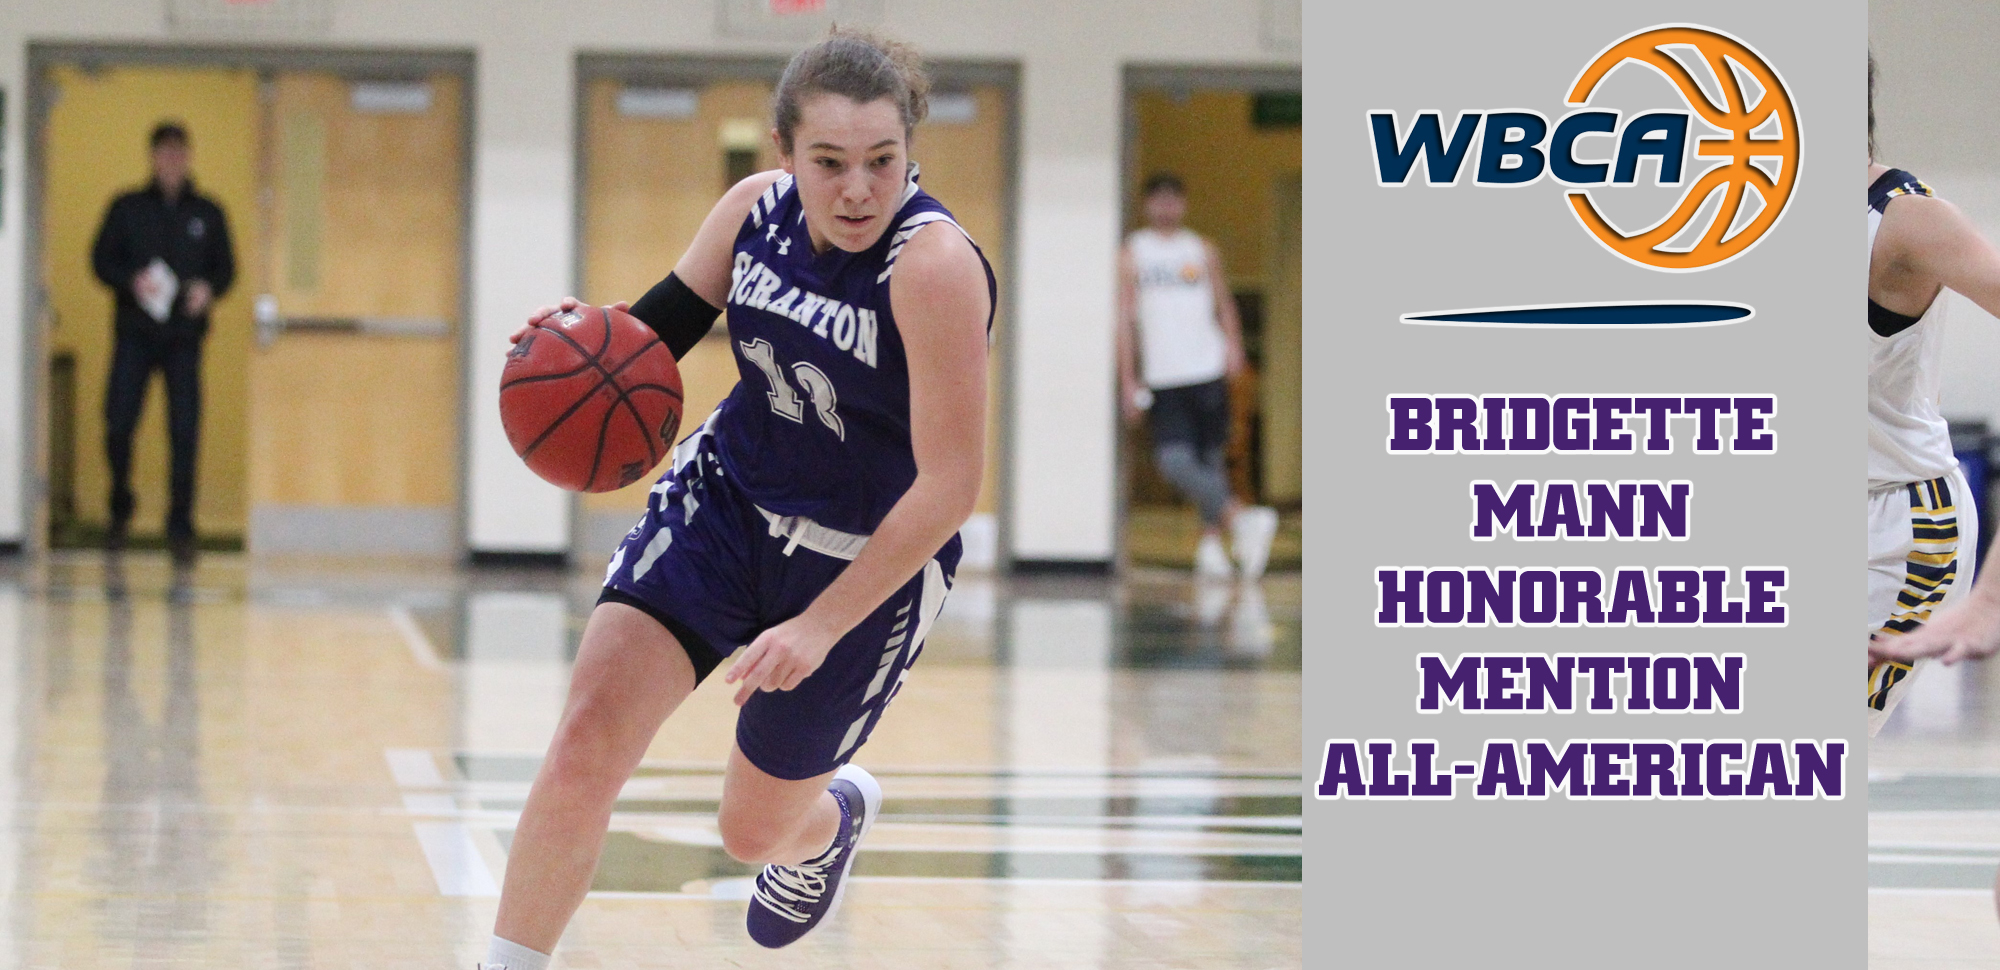 Senior guard Bridgette Mann became the 10th player in Scranton history to earn multiple All-American awards on Thursday night.